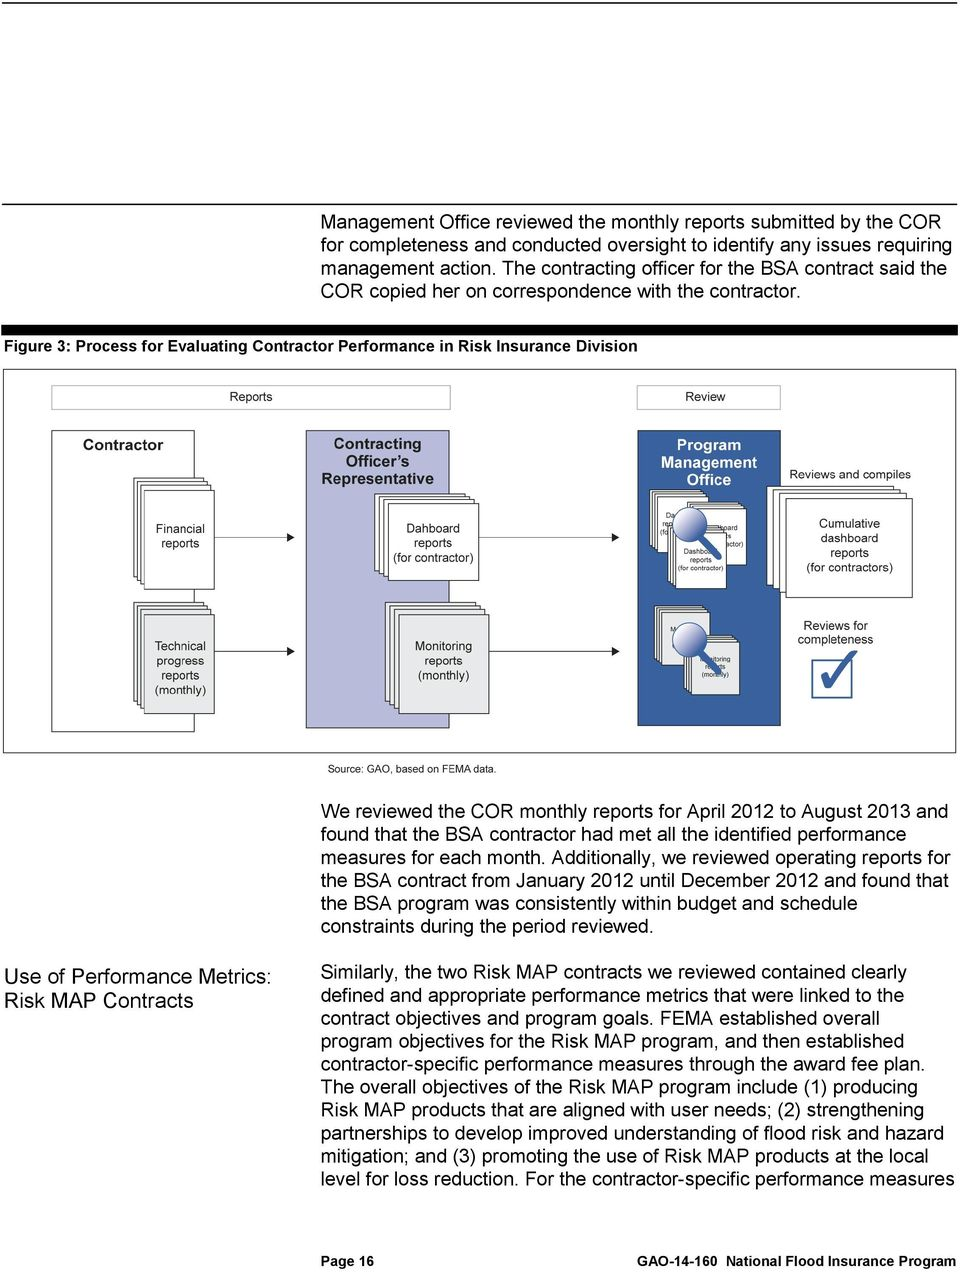 Figure 3: Process for Evaluating Contractor Performance in Risk Insurance Division We reviewed the COR monthly reports for April 2012 to August 2013 and found that the BSA contractor had met all the